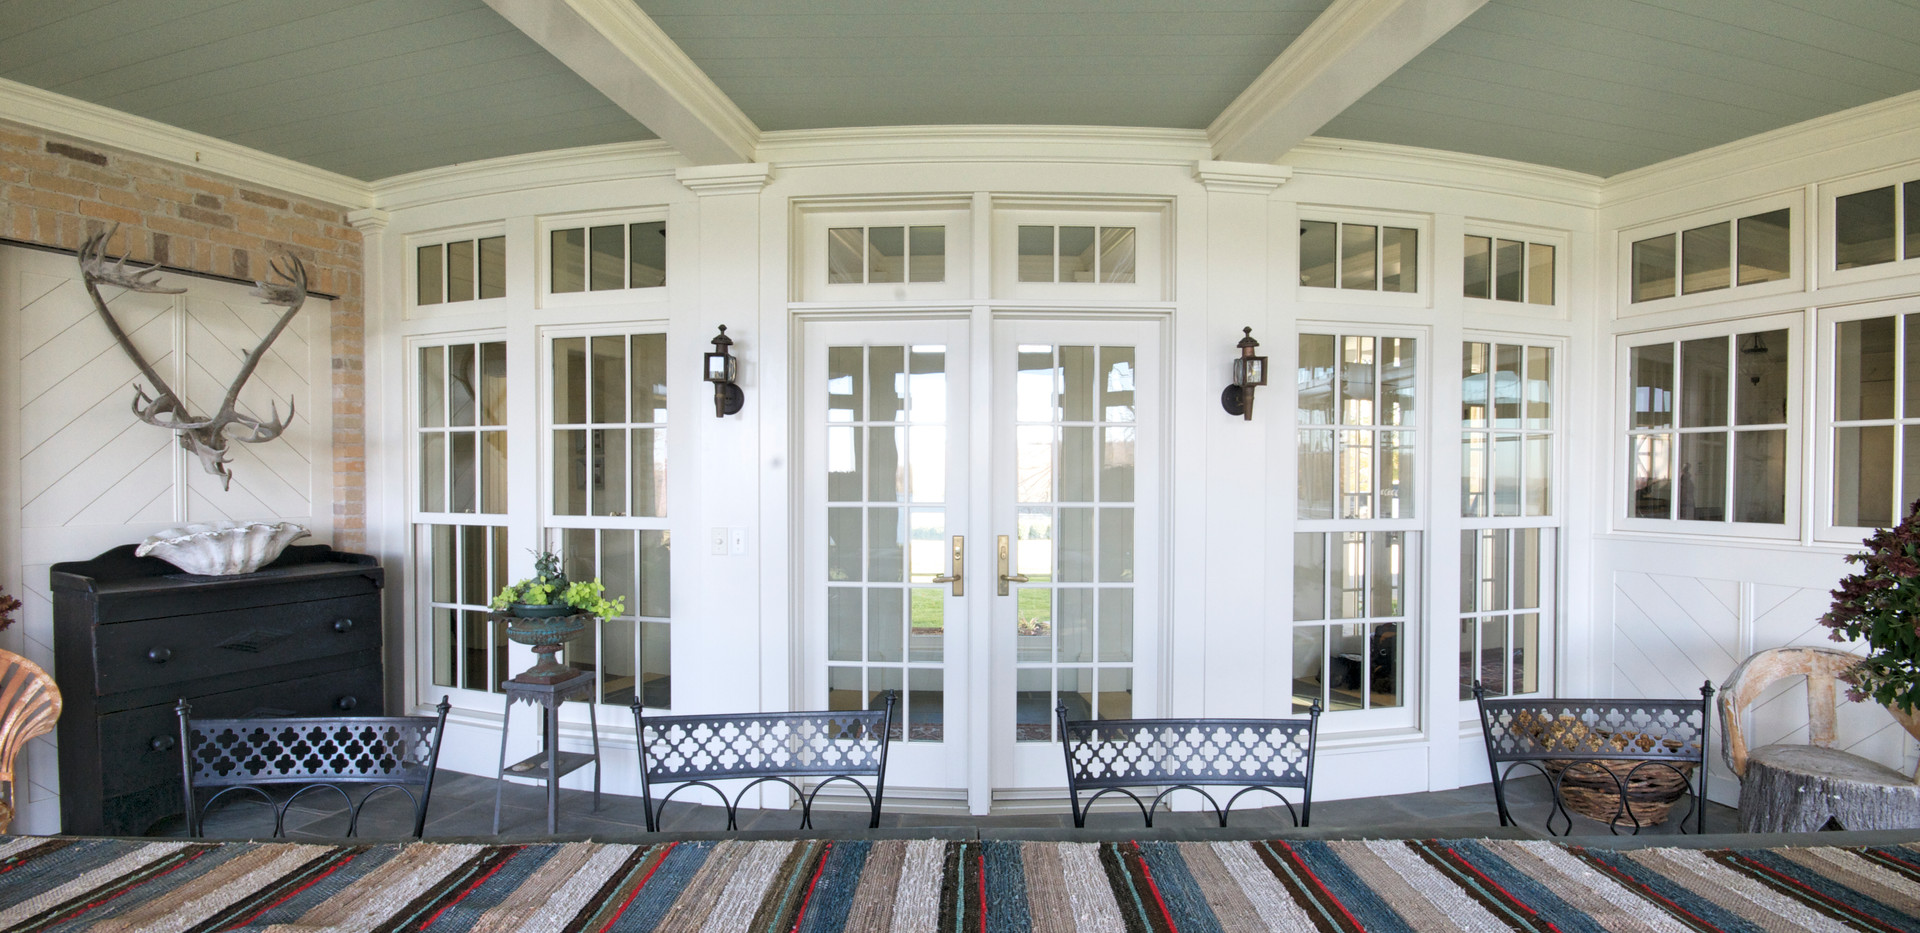 Curved Screen Porch.jpg